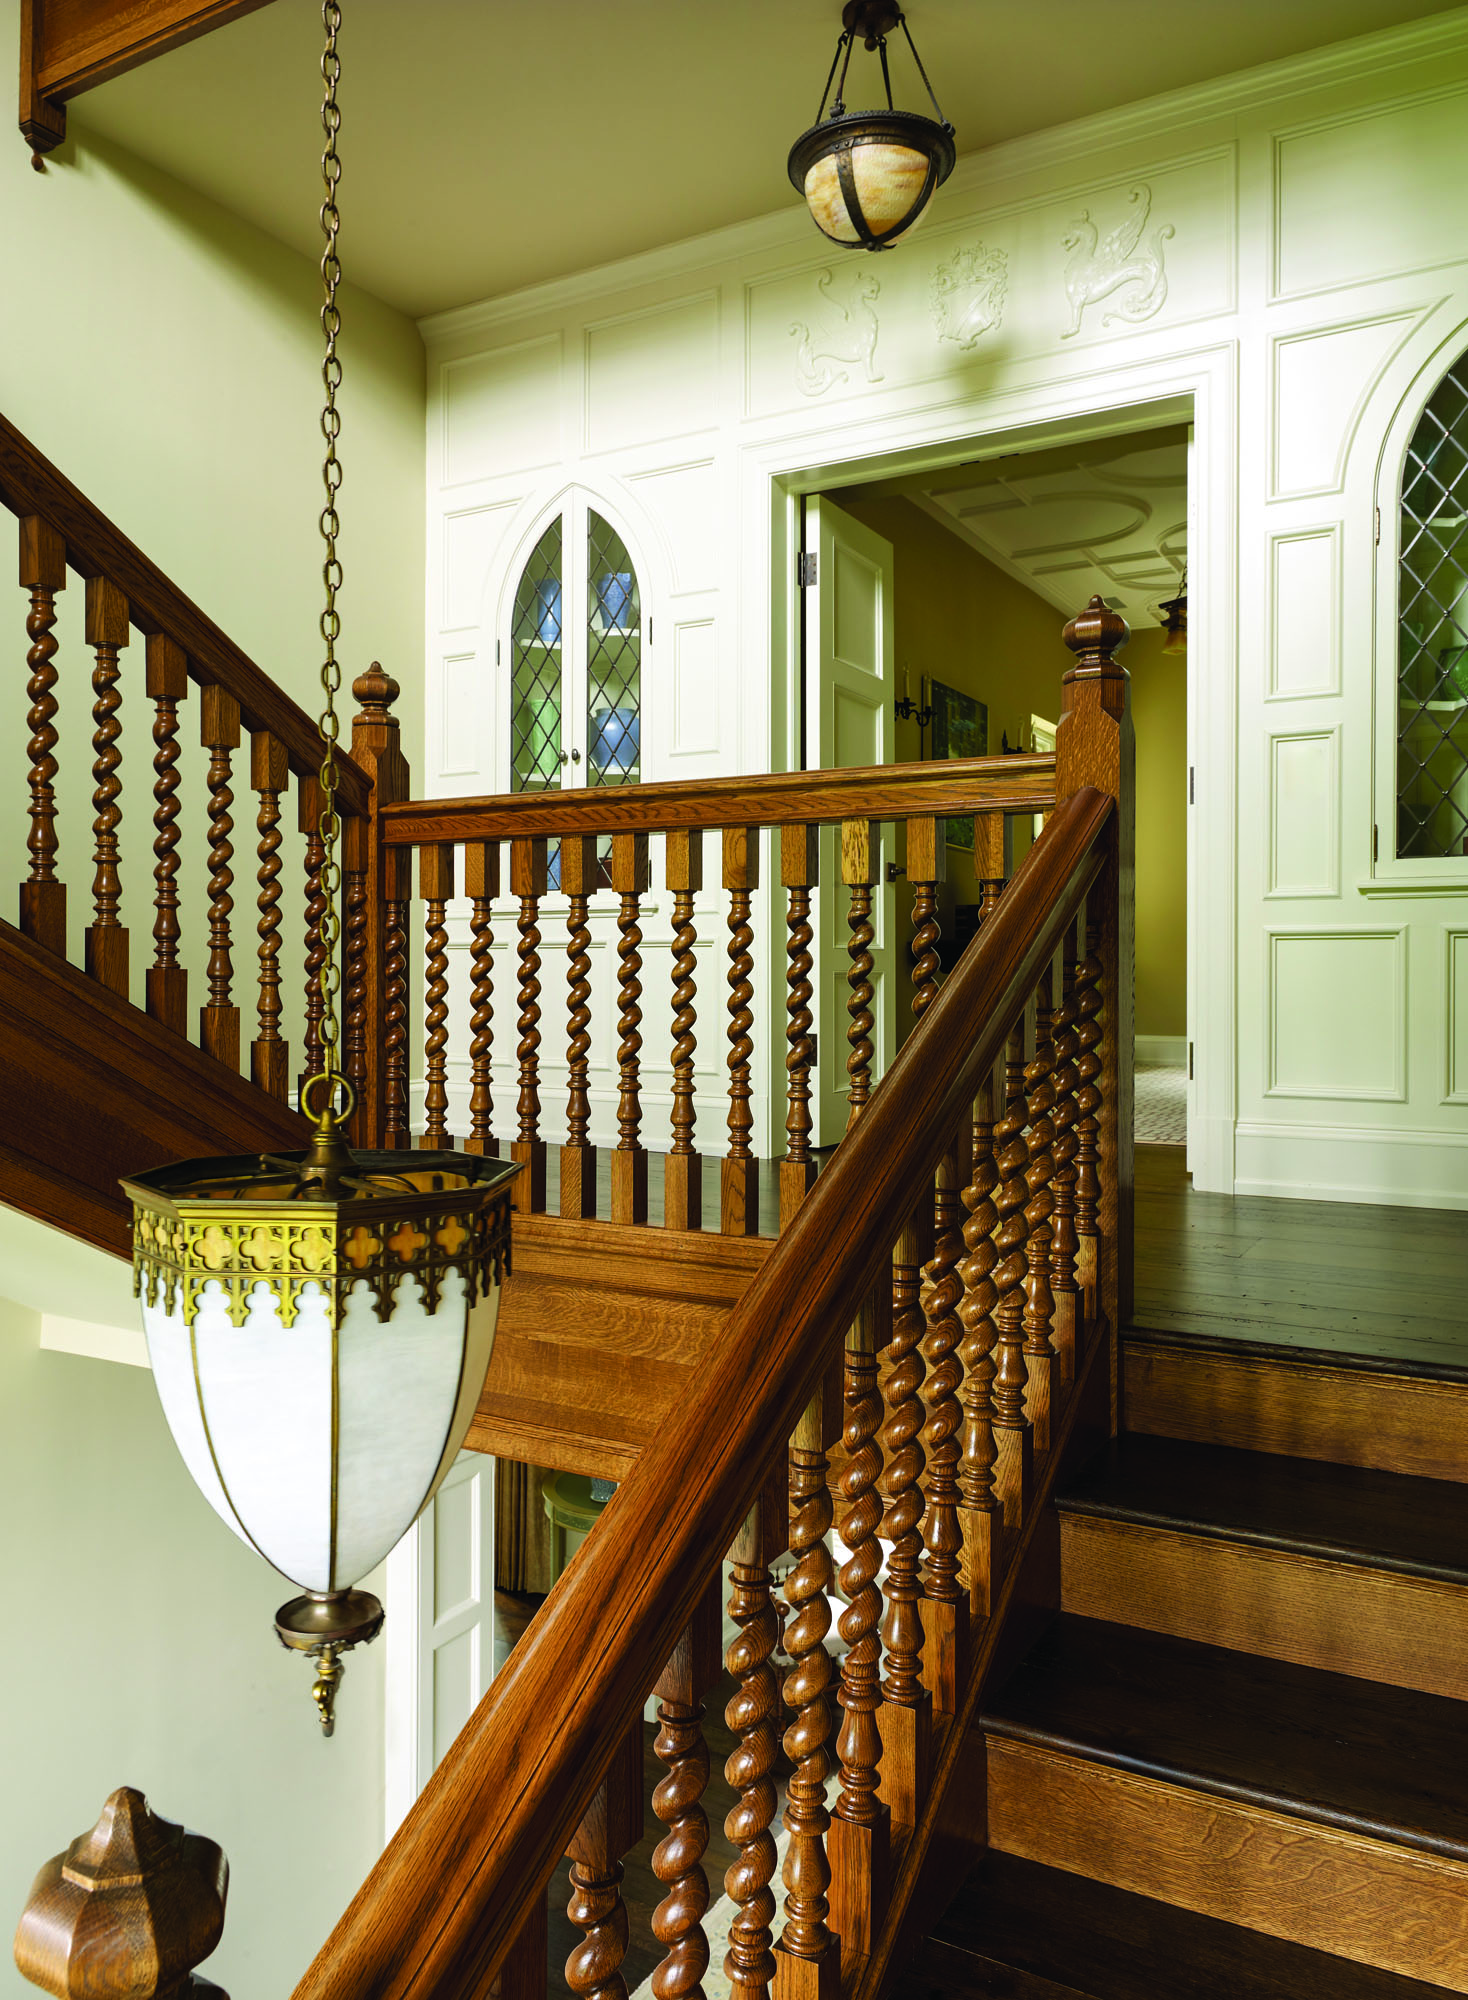 The oak stair was inspired by English precedent.